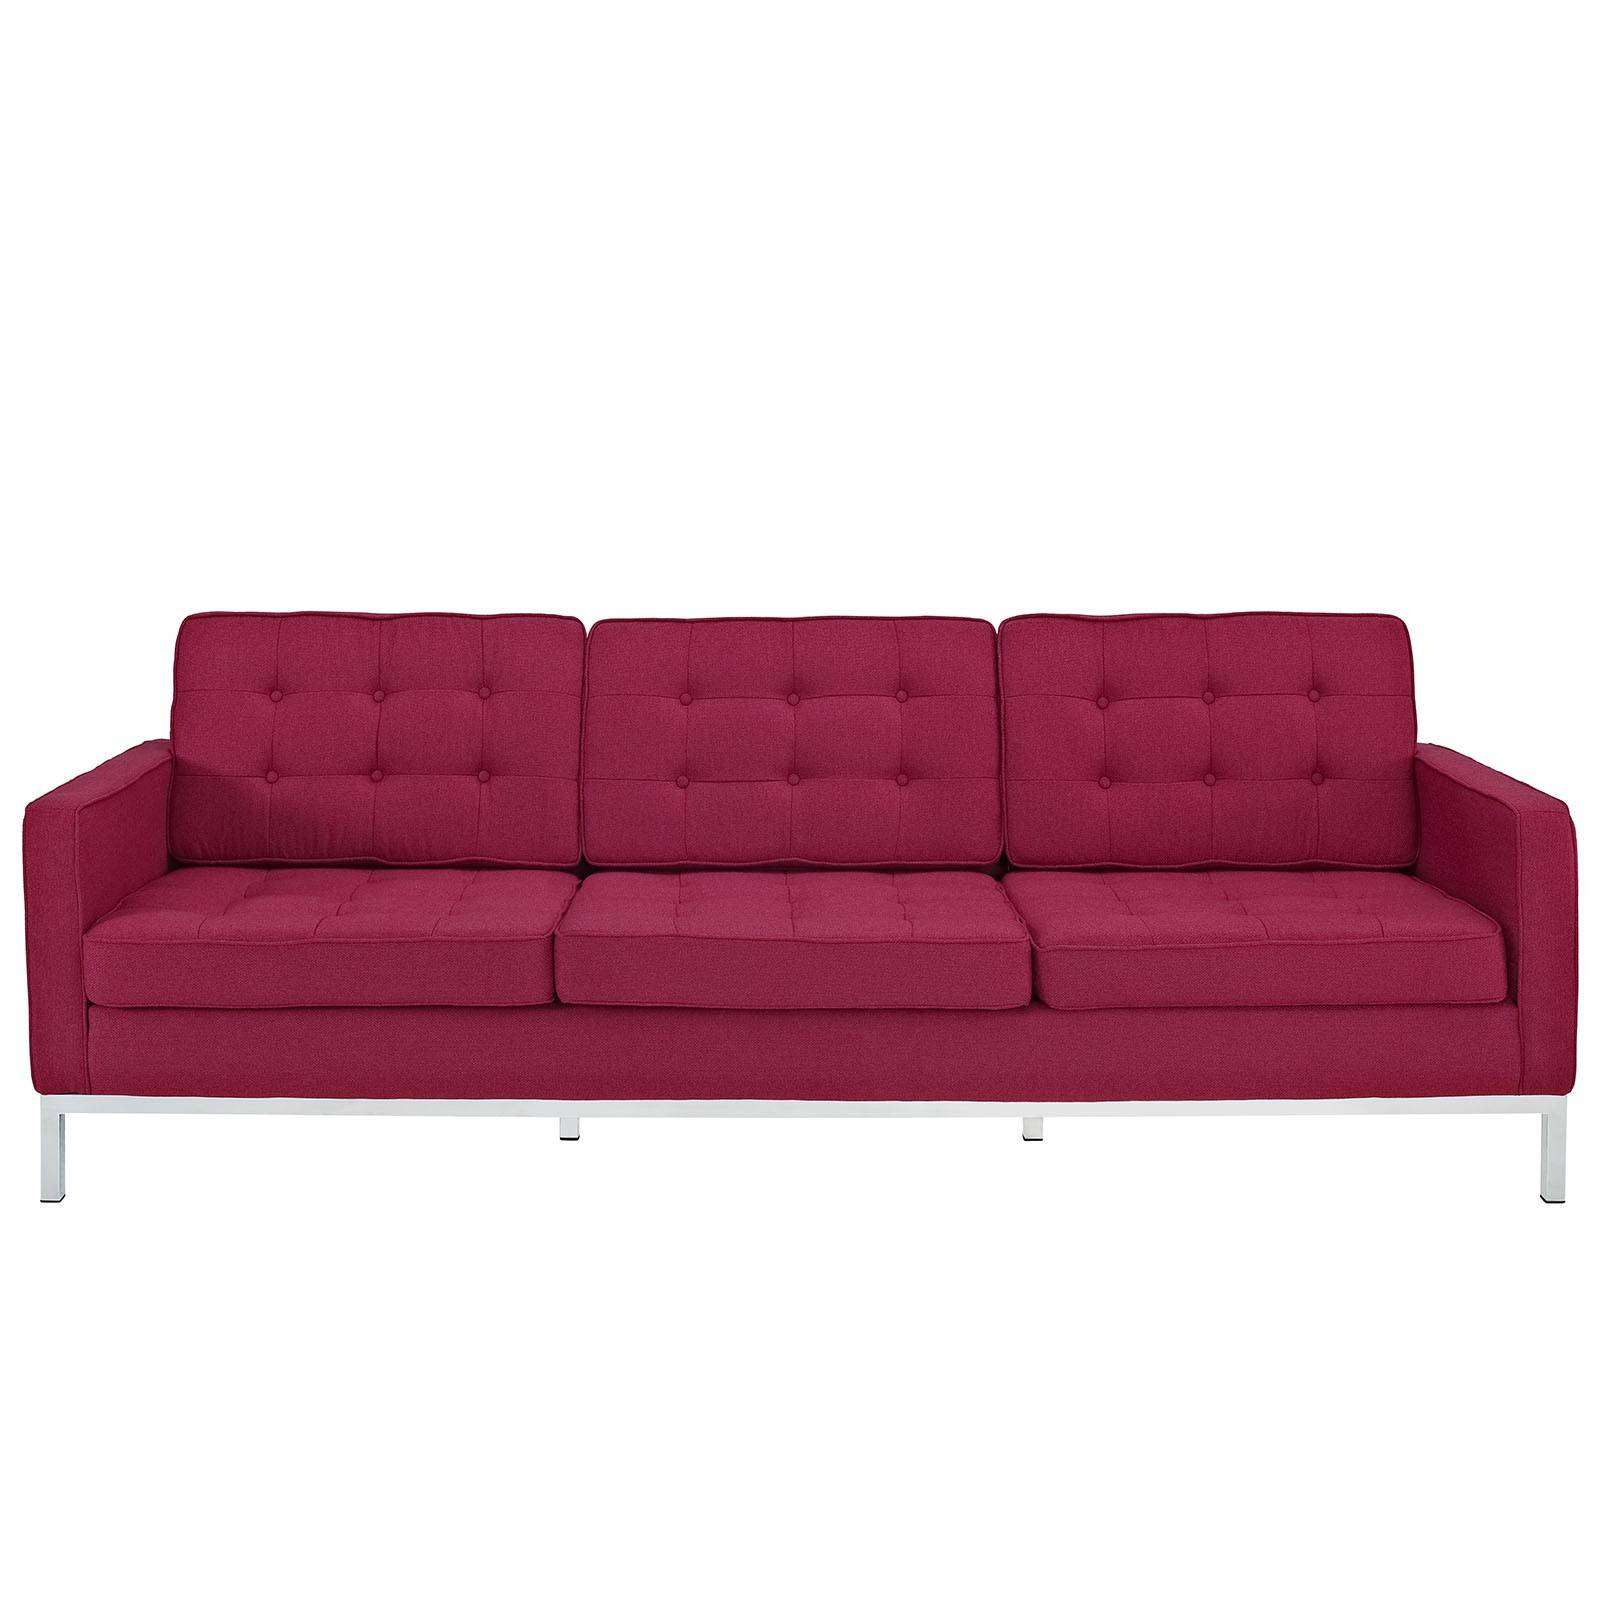 florence knoll sofa review istikbal max sleeper style couch wool